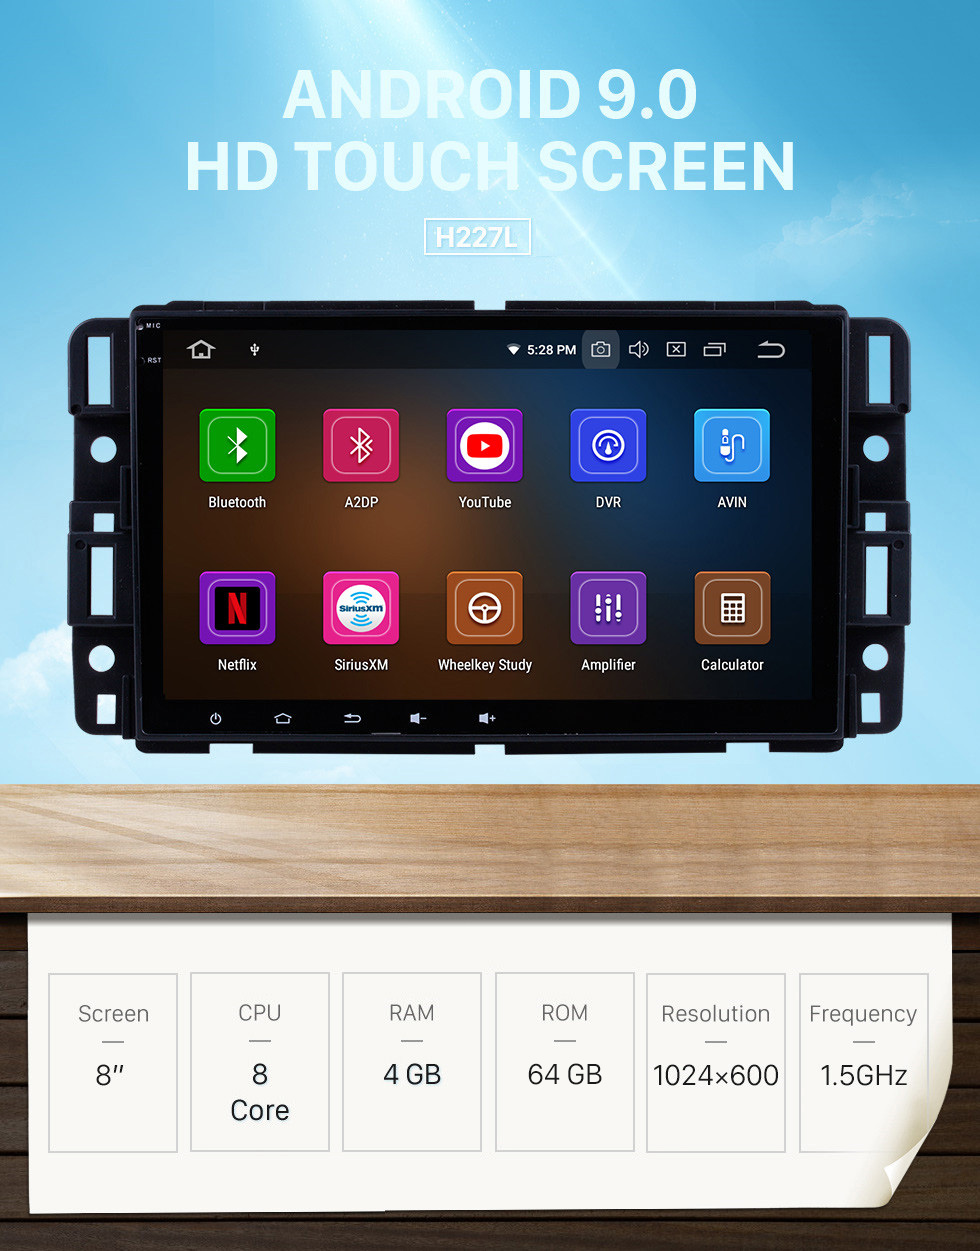 Seicane 8 Inch Android 9.0 HD Touchscreen Radio Head Unit For 2009 2010 2011 Chevrolet Chevy Traverse Car Stereo GPS Navigation System Bluetooth Phone WIFI Support Digital TV DVR USB DAB+ OBDII Steering Wheel Control Rearview Camera